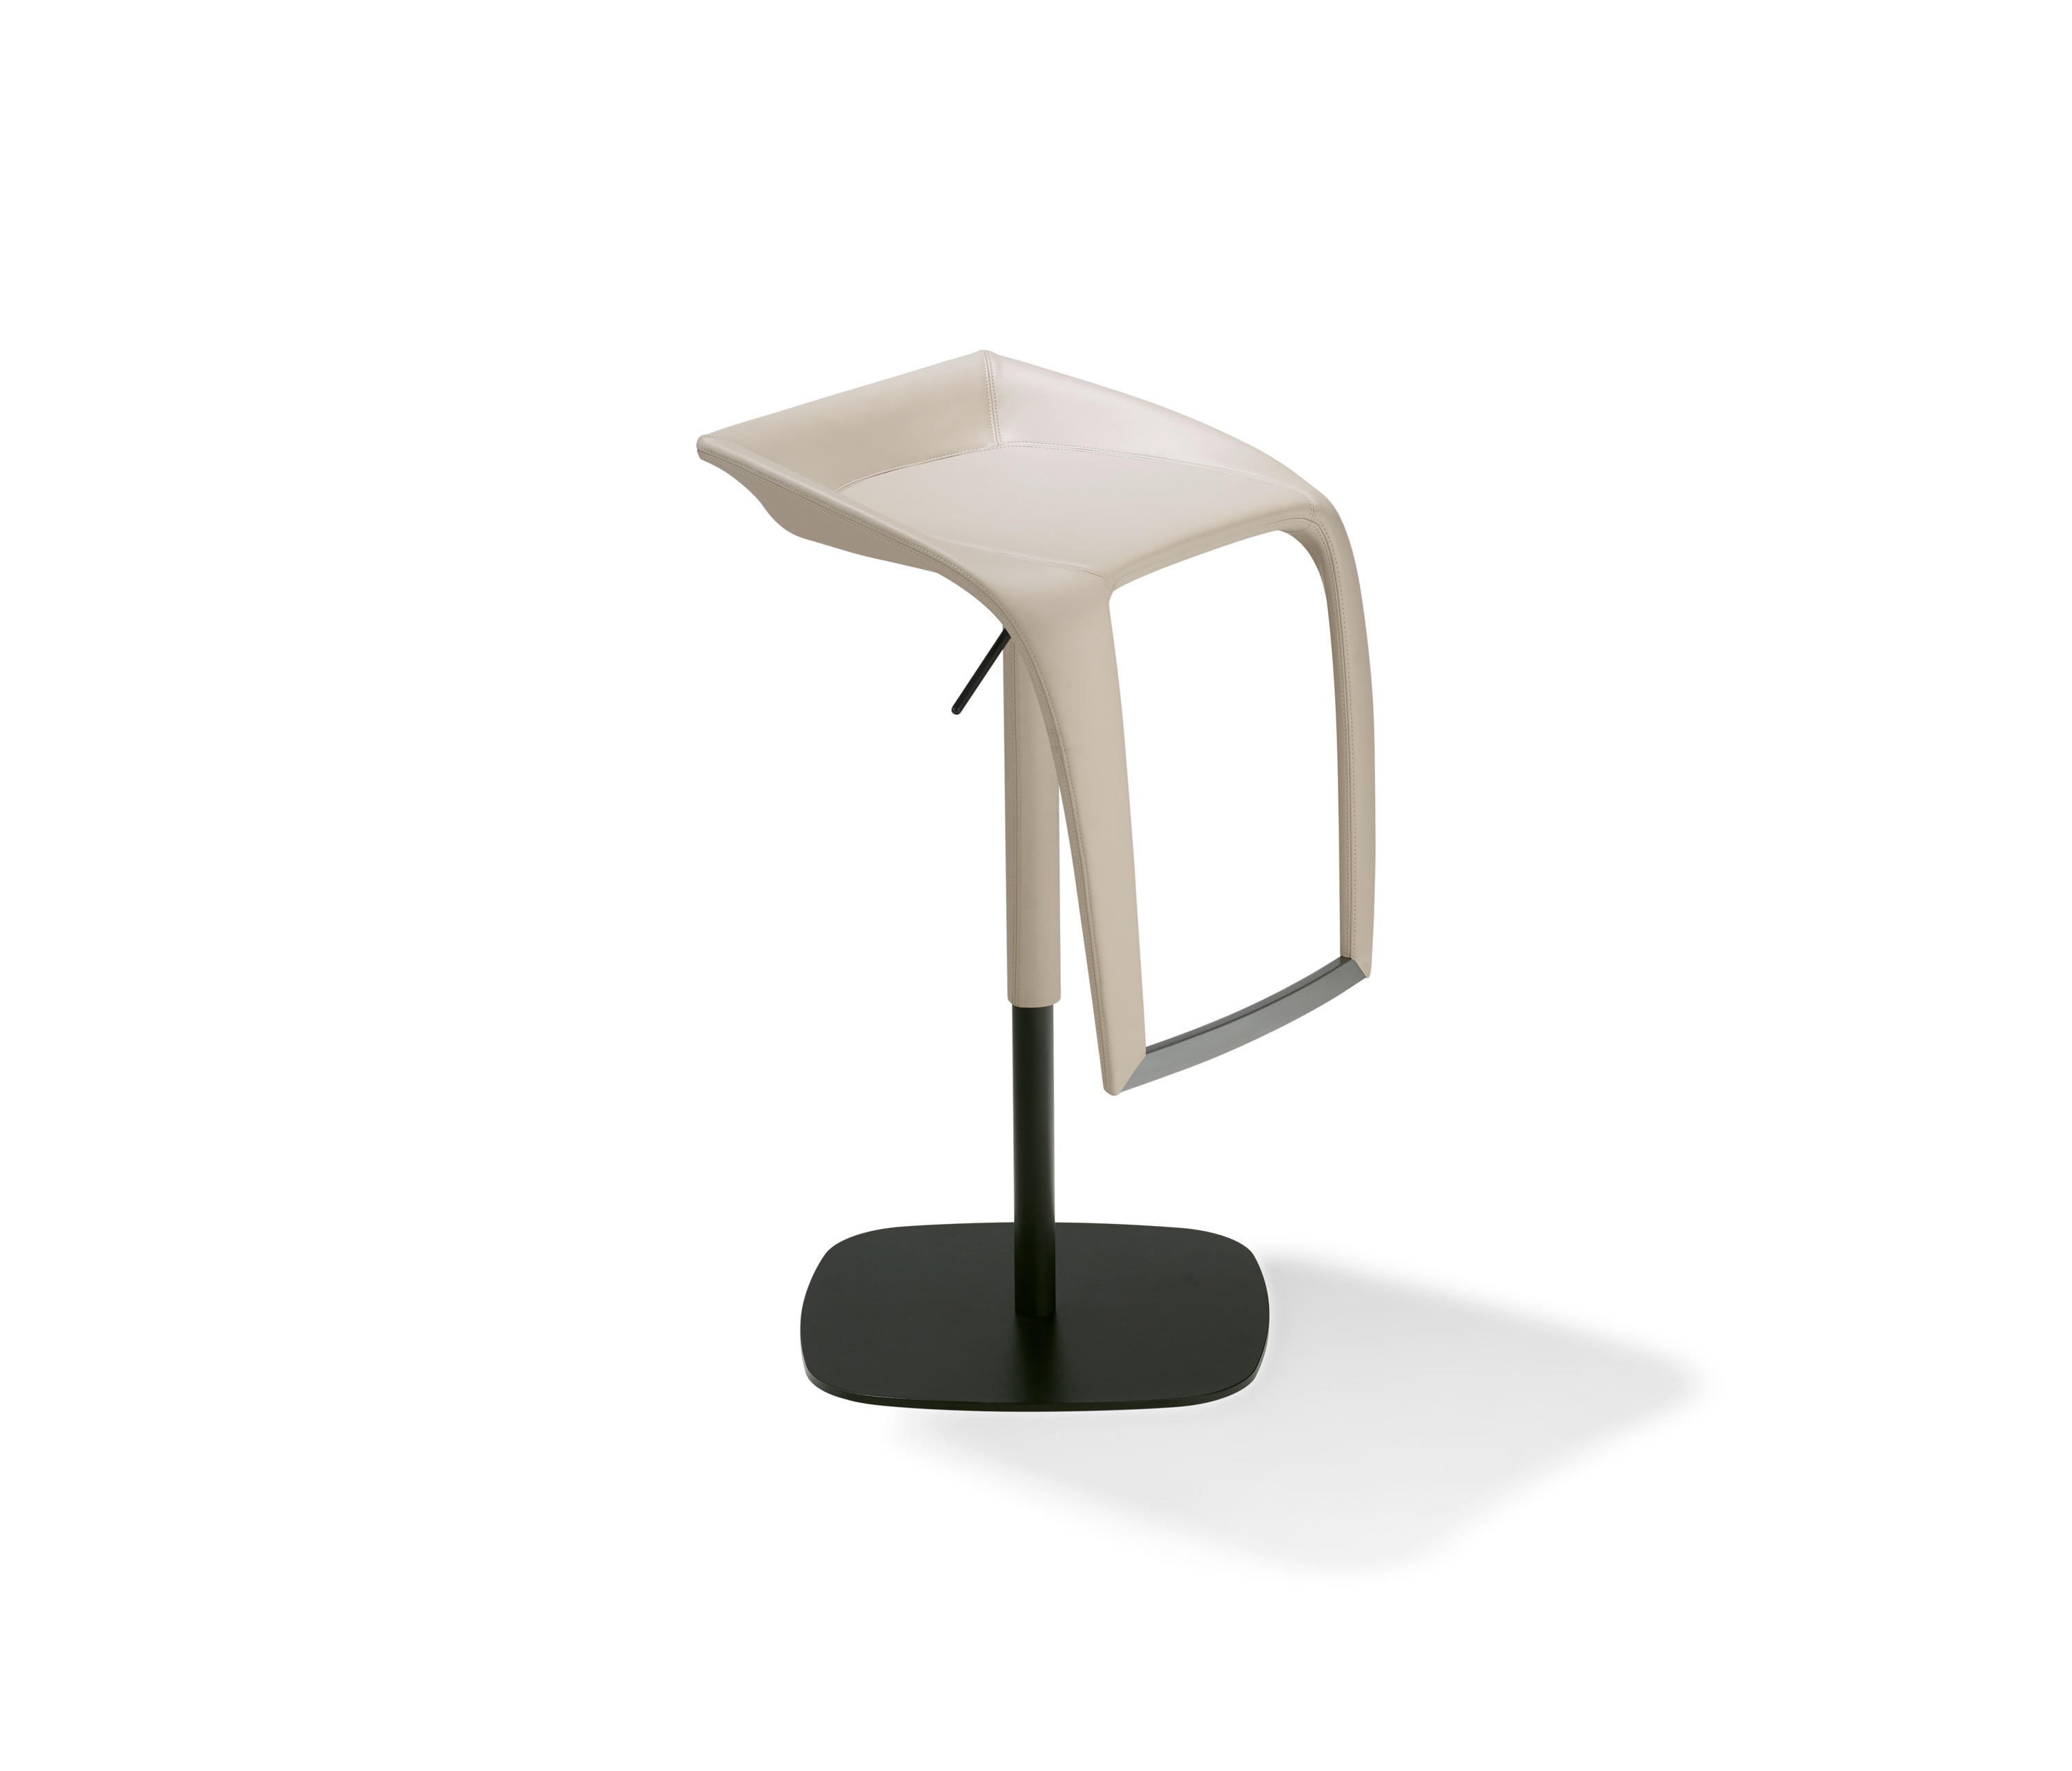 Leaf | 2081 by DRAENERT | Bar stools ...